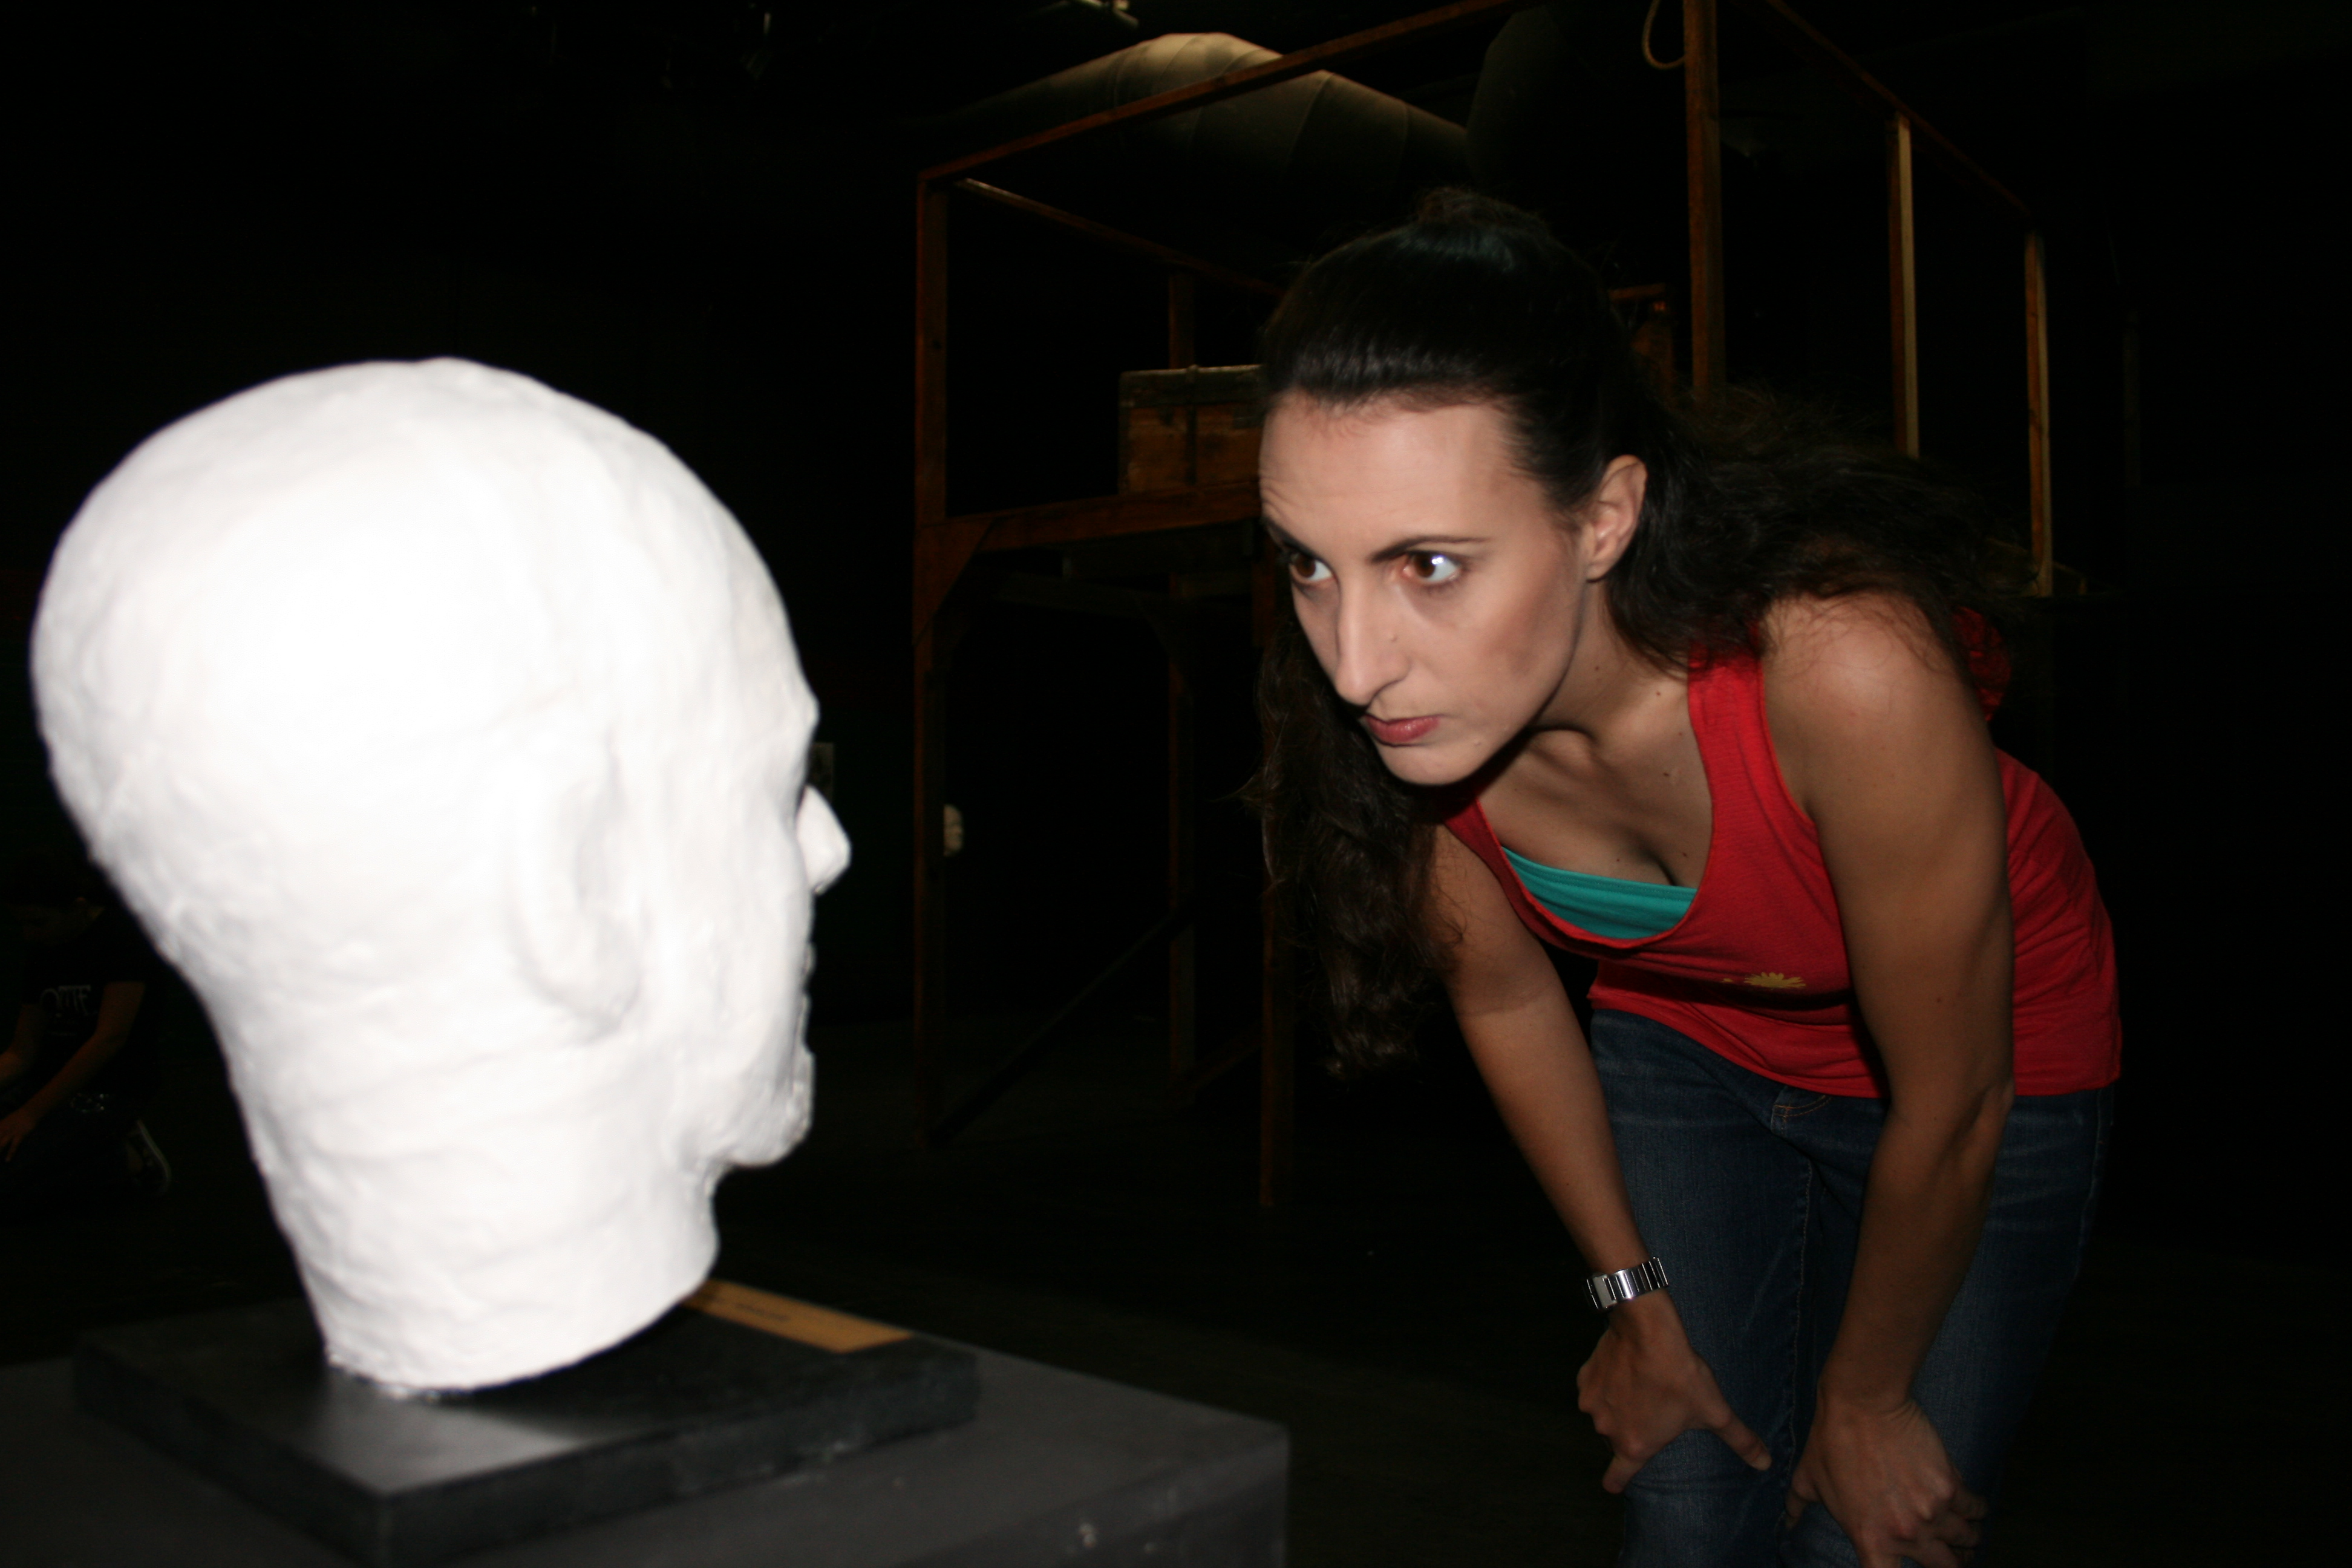 Jess studies the death mask of a notorious murder at the old prison.